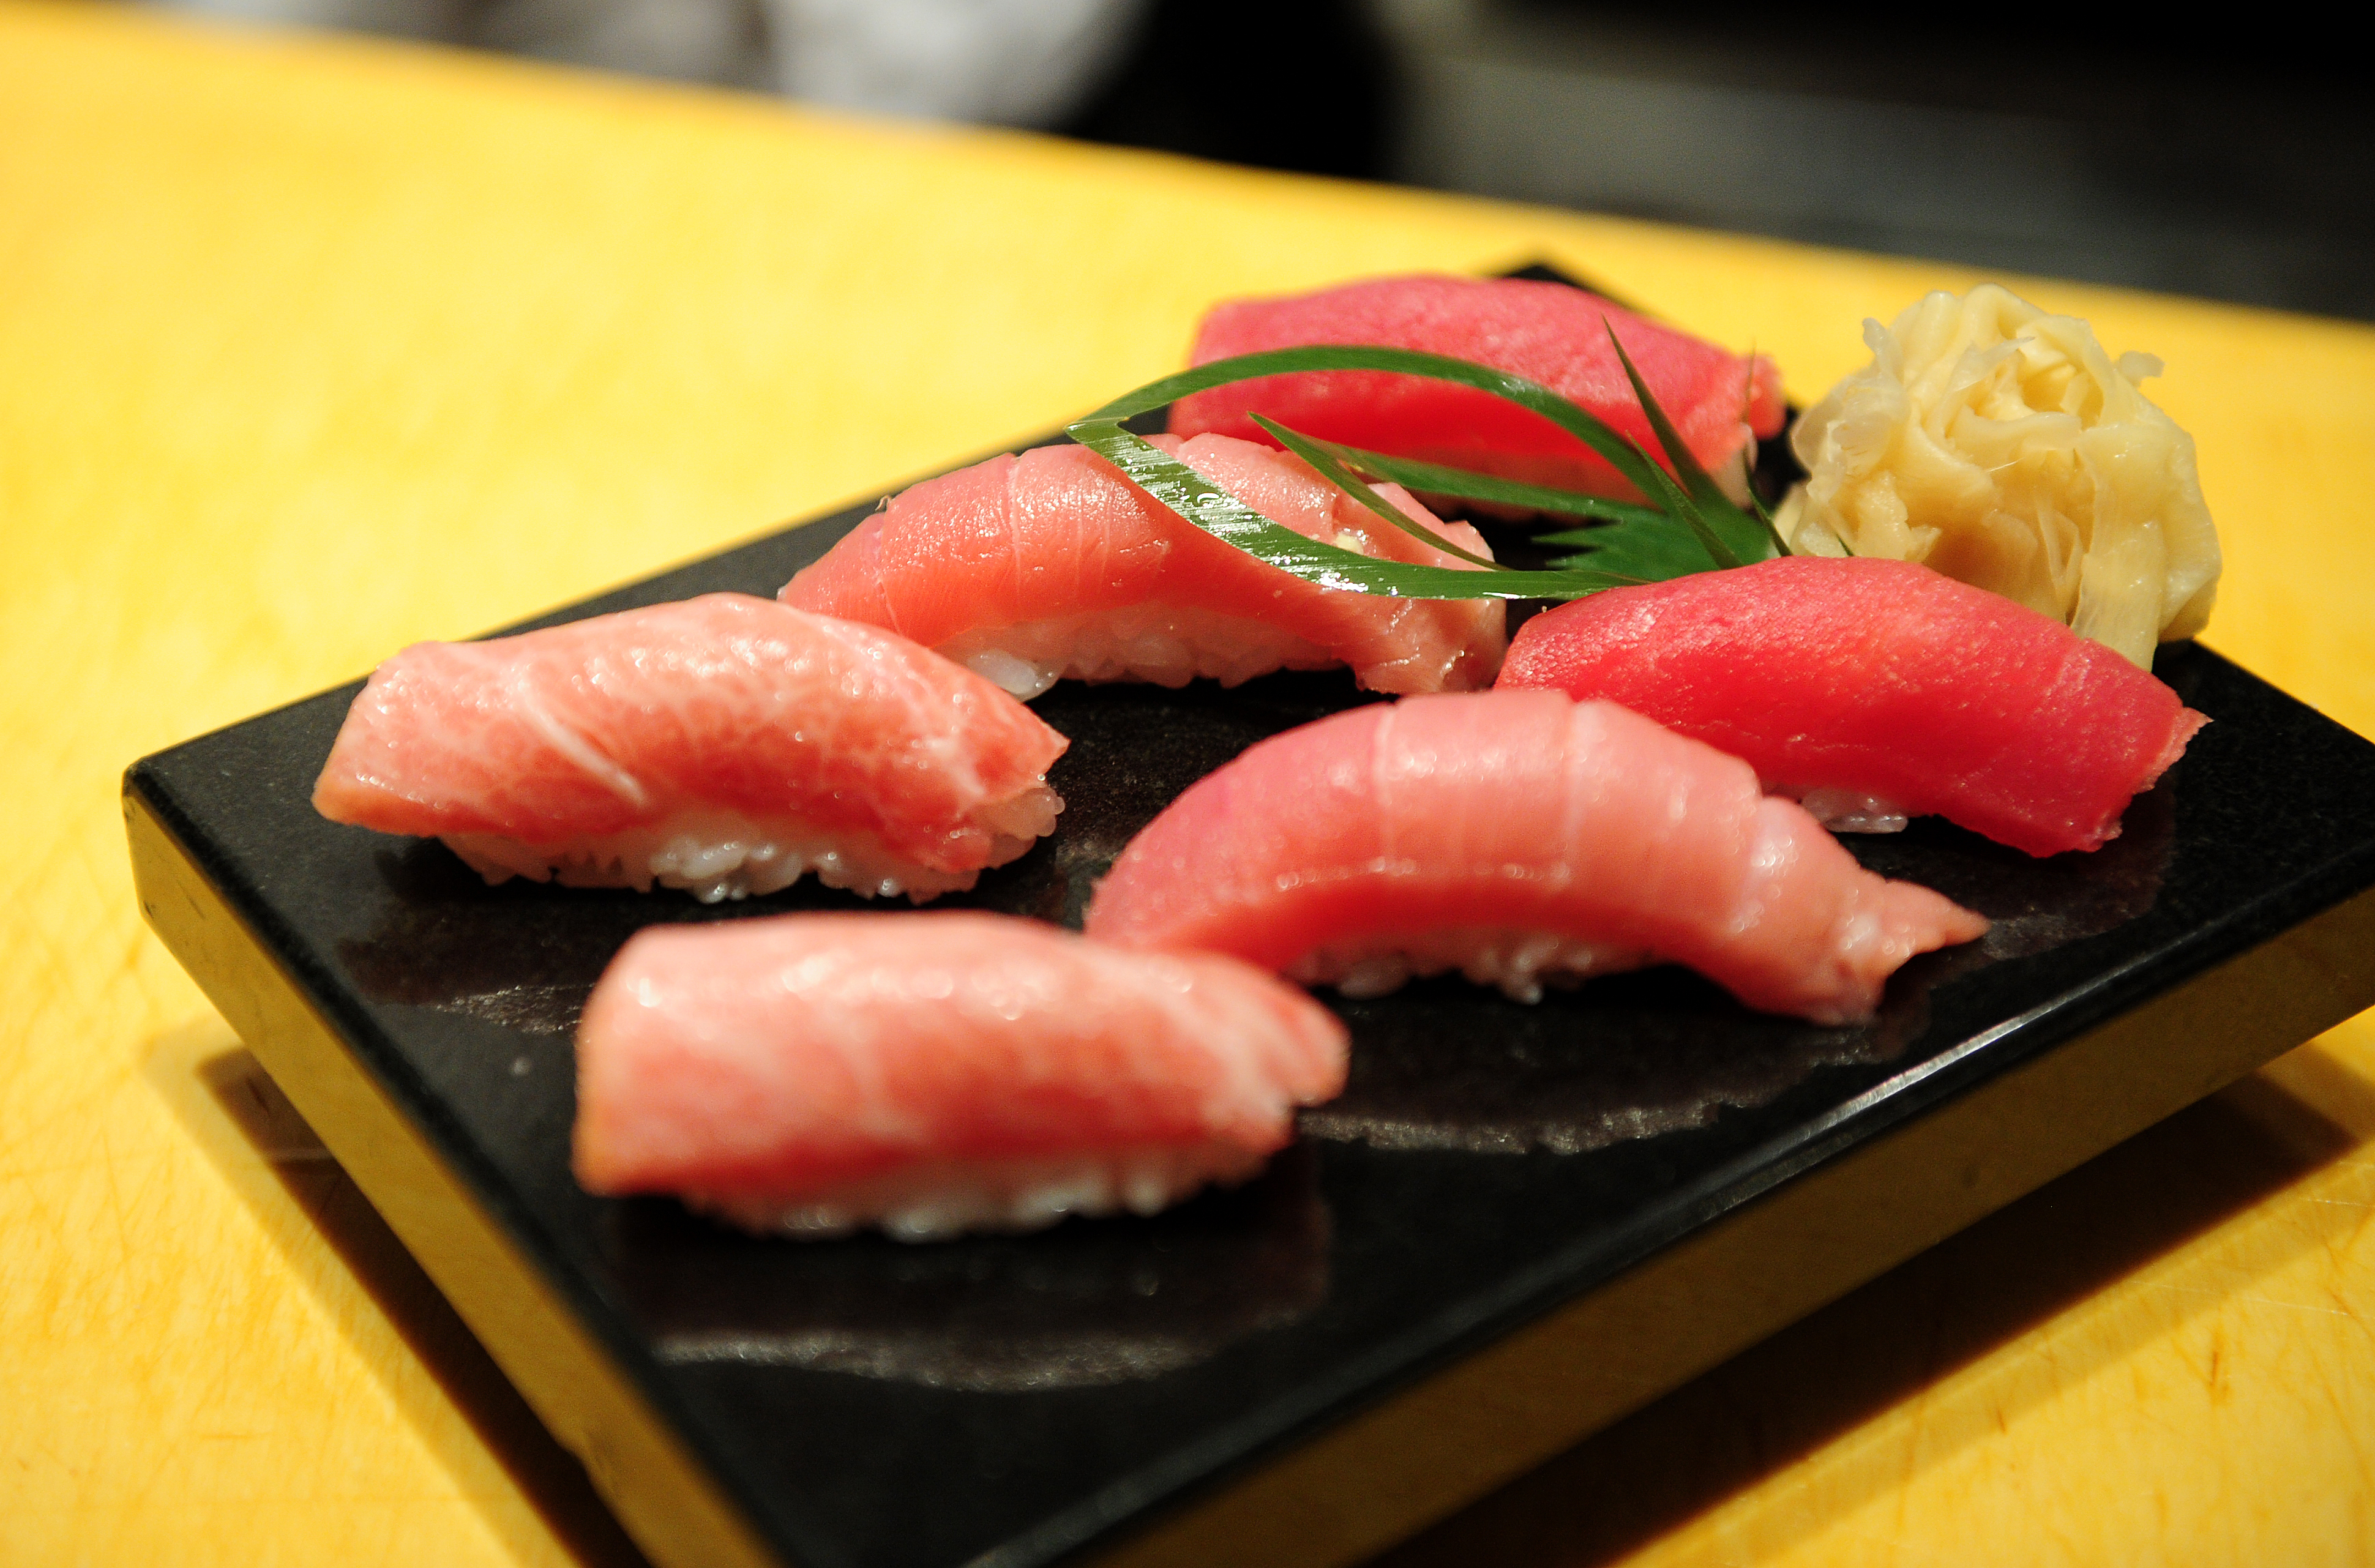 Uh oh: The sushi fish you're eating might not be the kind of fish you ordered